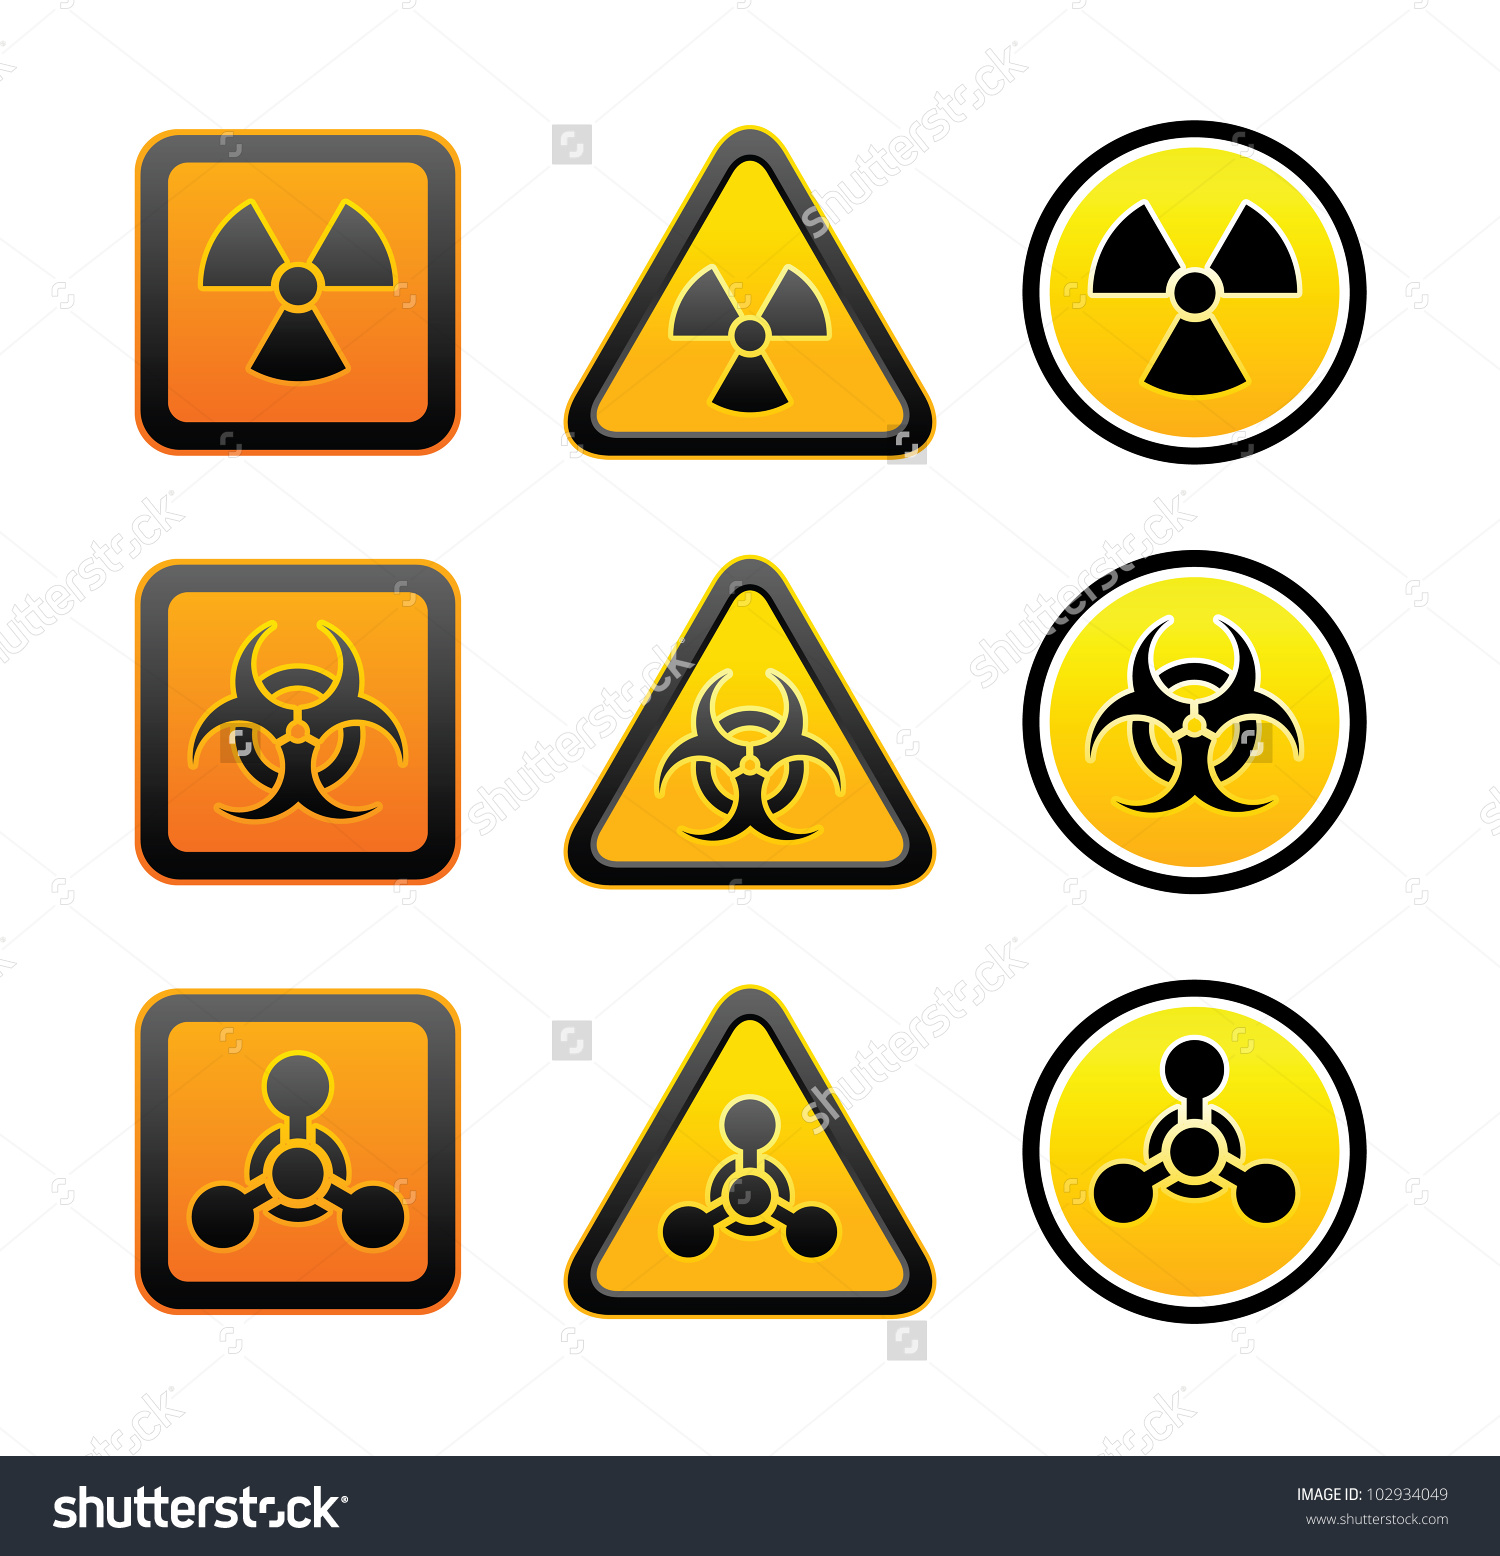 Radioactive clipart hazard sign Law Warning  Hazard Symbols